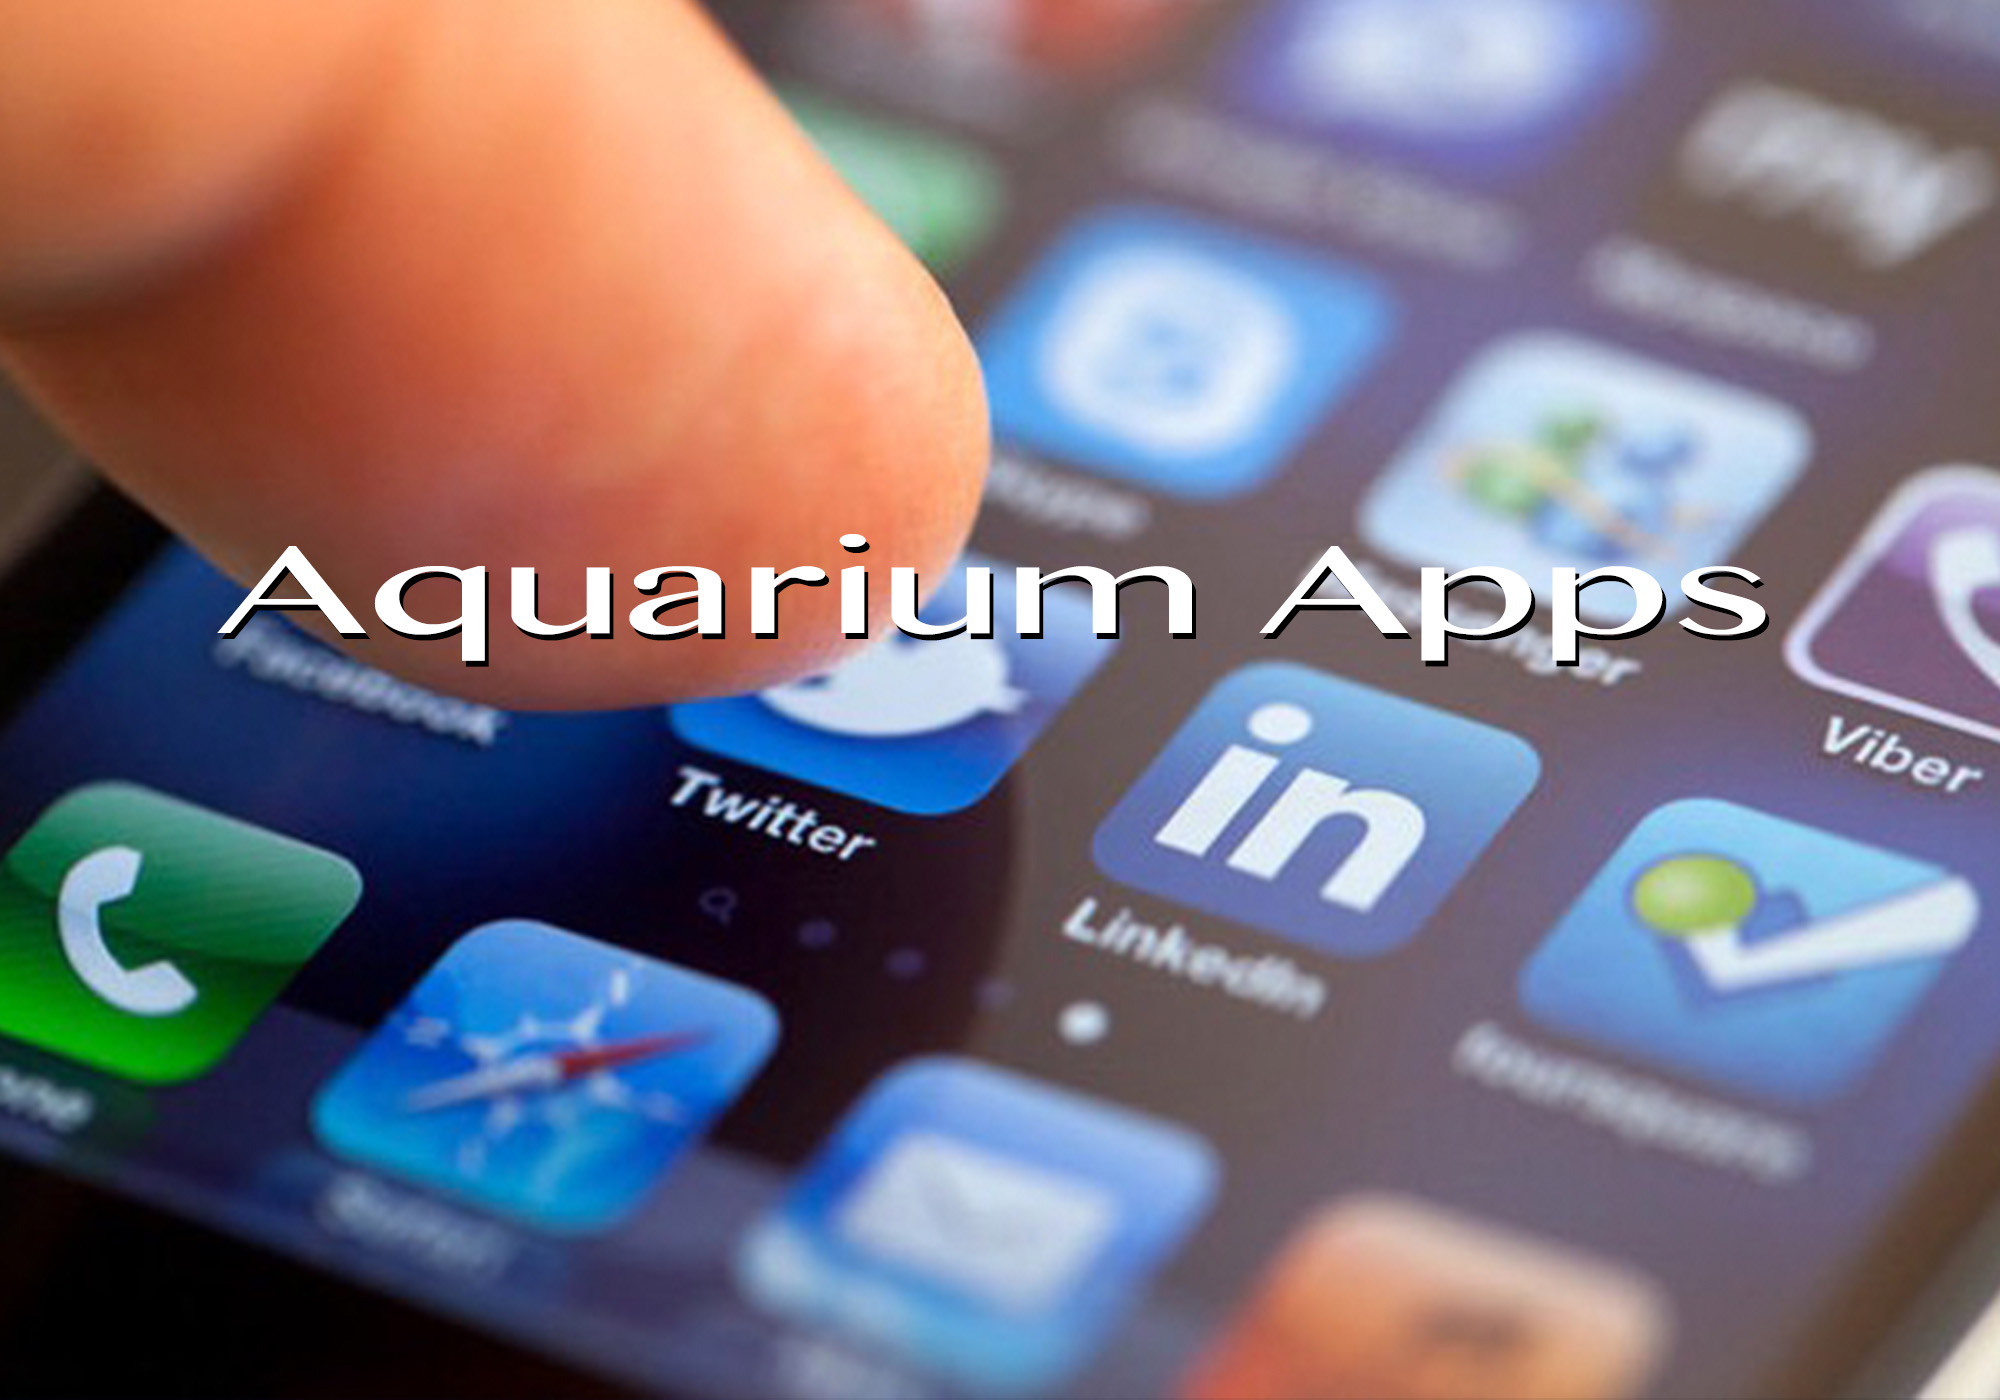 Aquarium apps